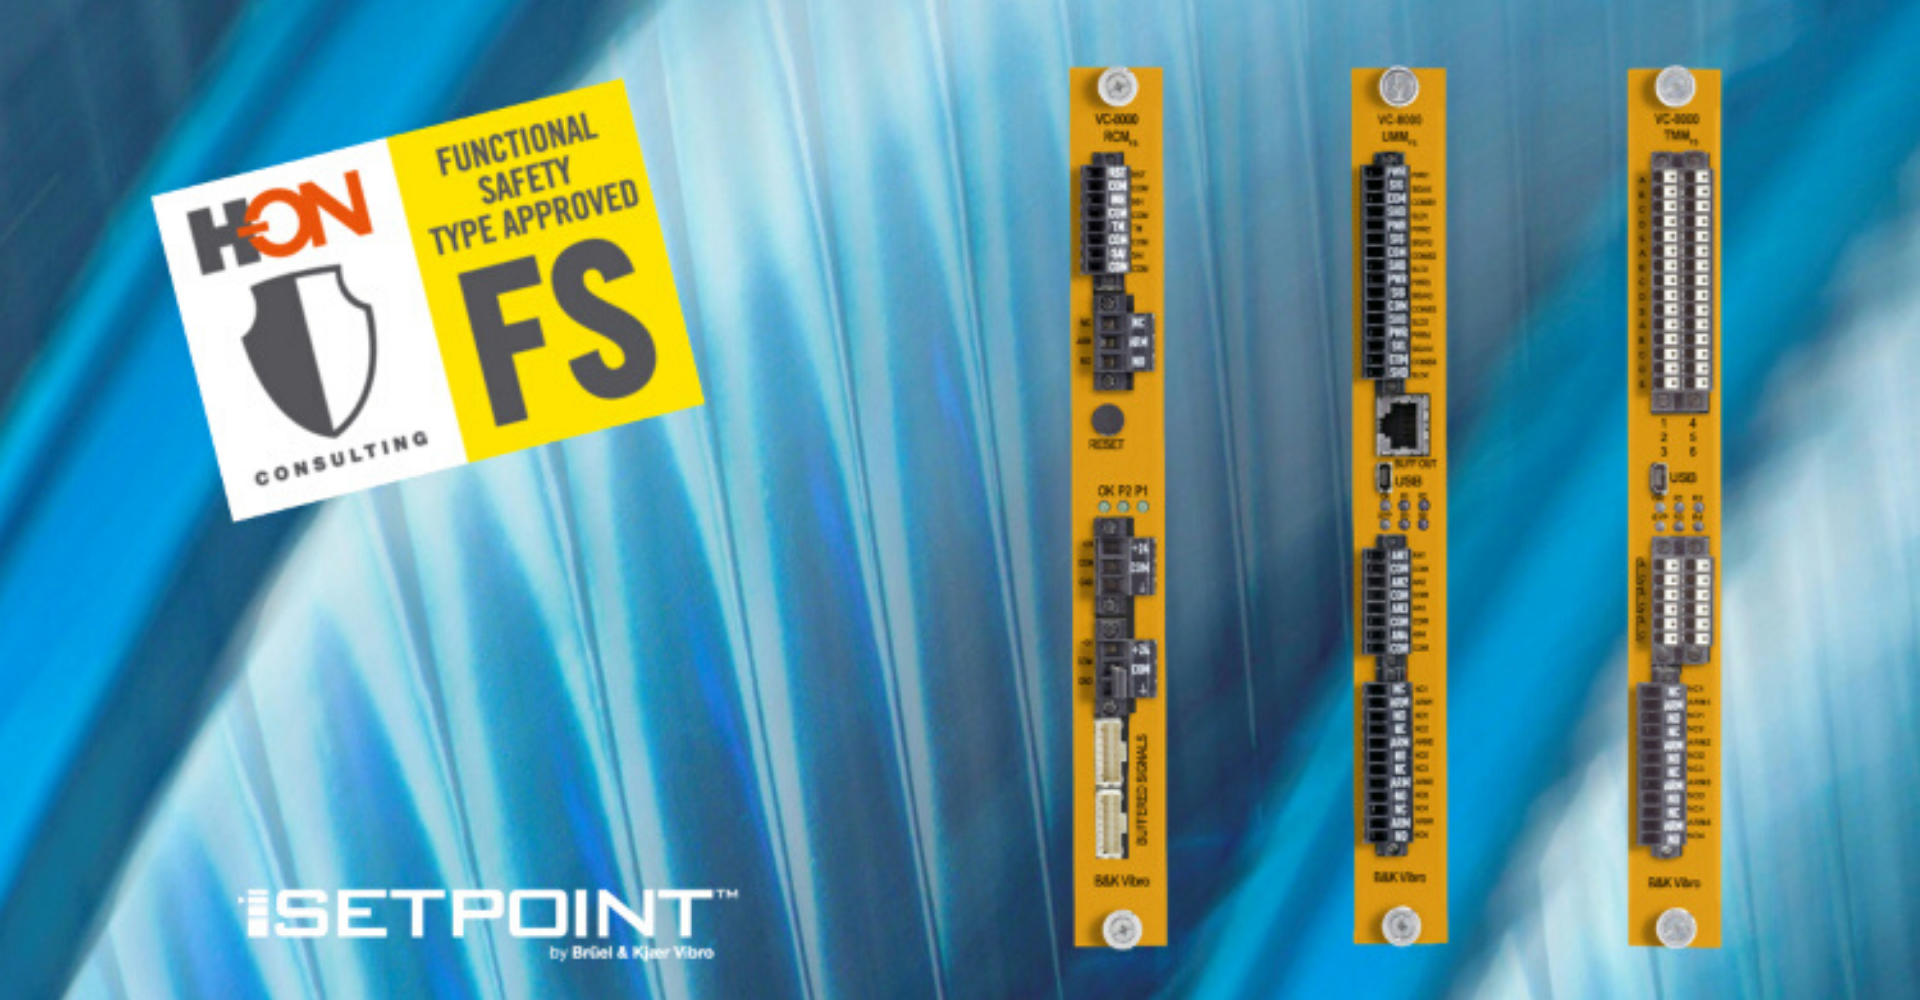 VC-800 SETPOINT SIL certified by H-ON